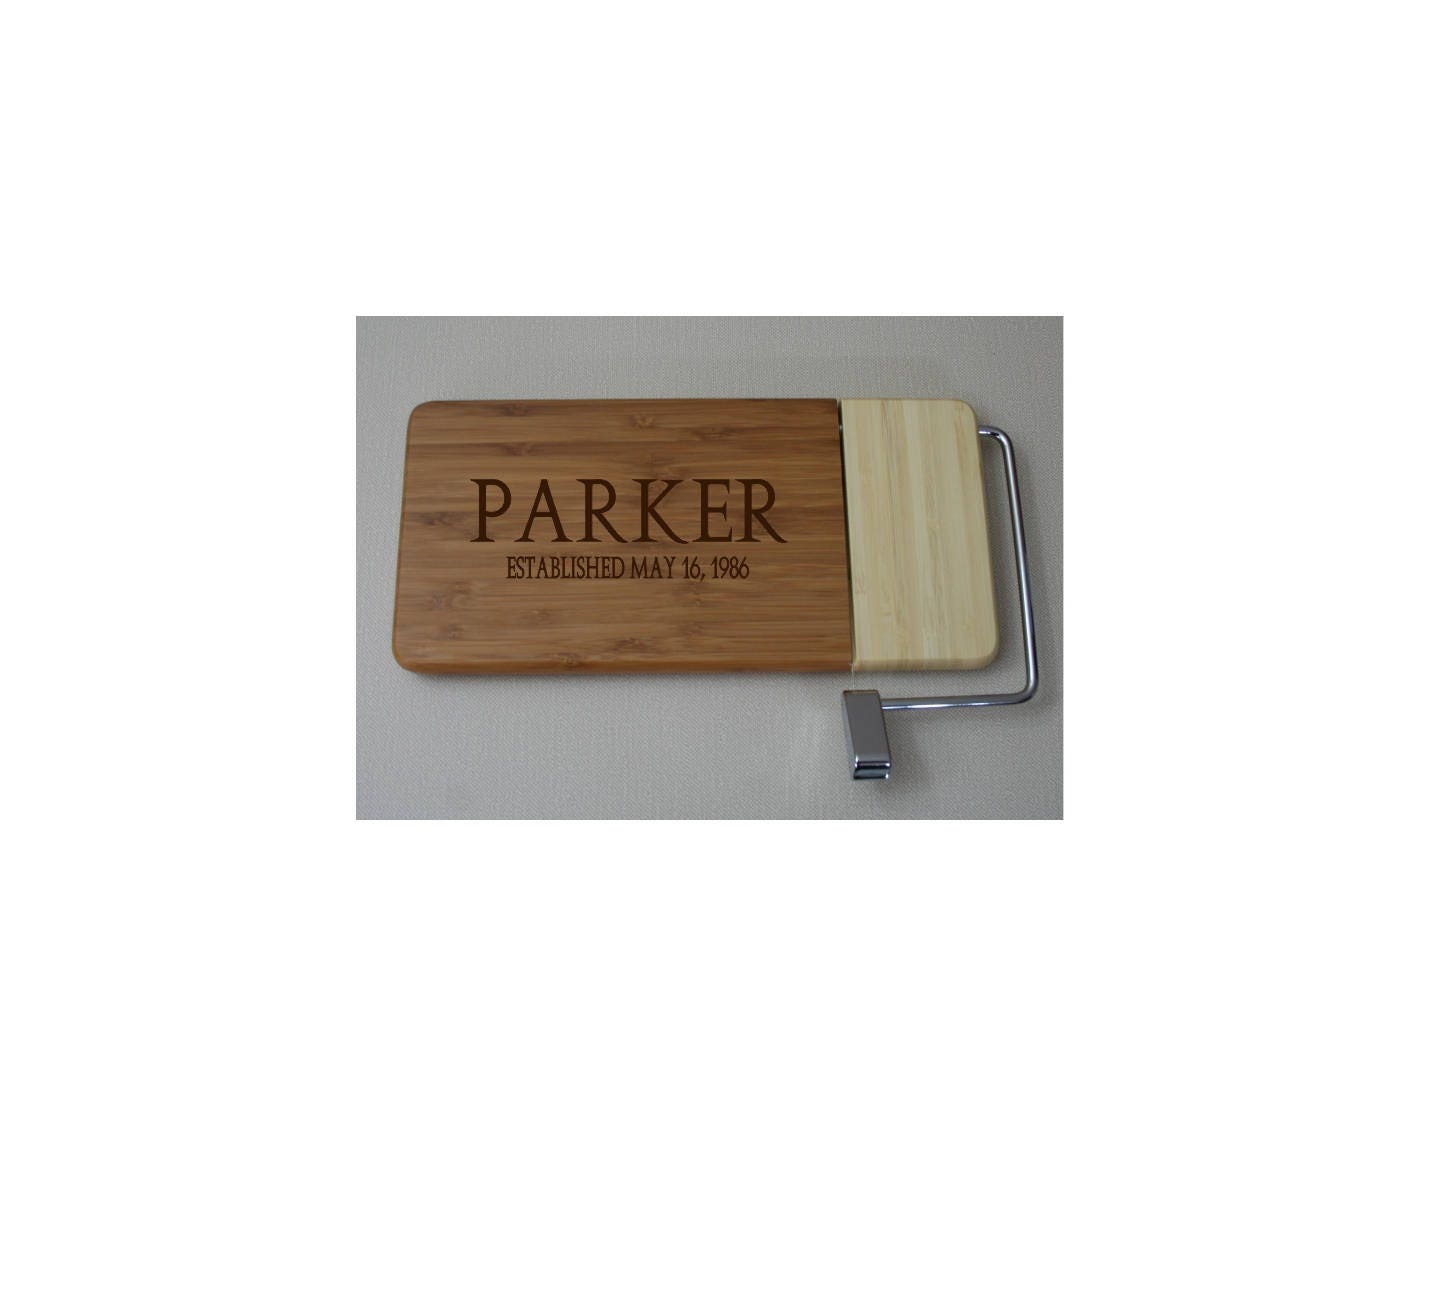 New !! Bamboo Cheese Slicer Board - Personalized Laser Engraved ...